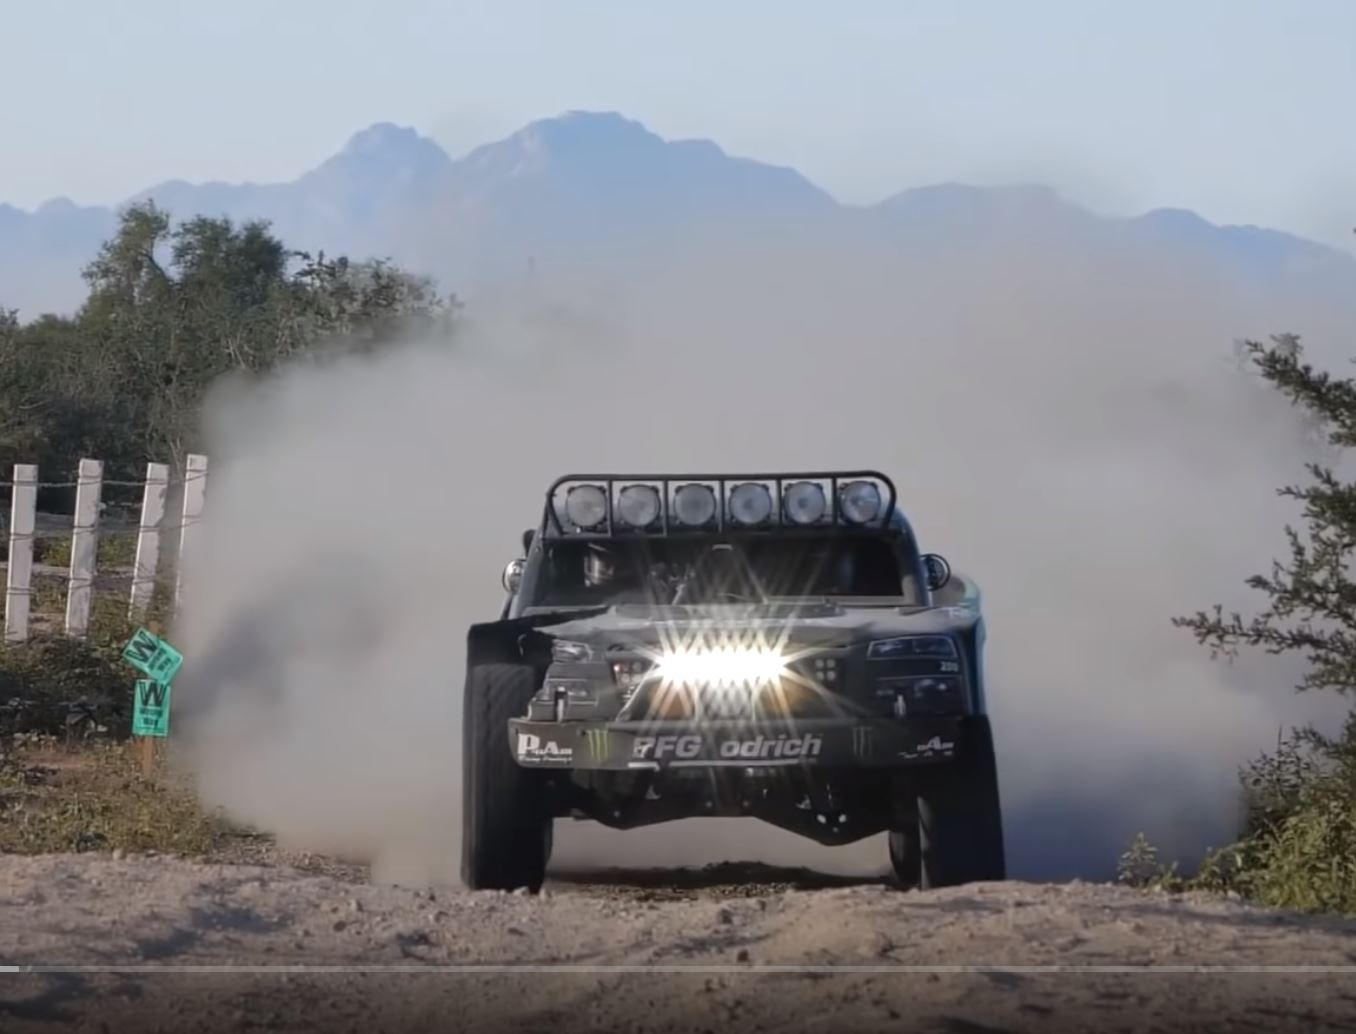 The Azteca War – Elias Hanna's Baja 1000 Experience On Video